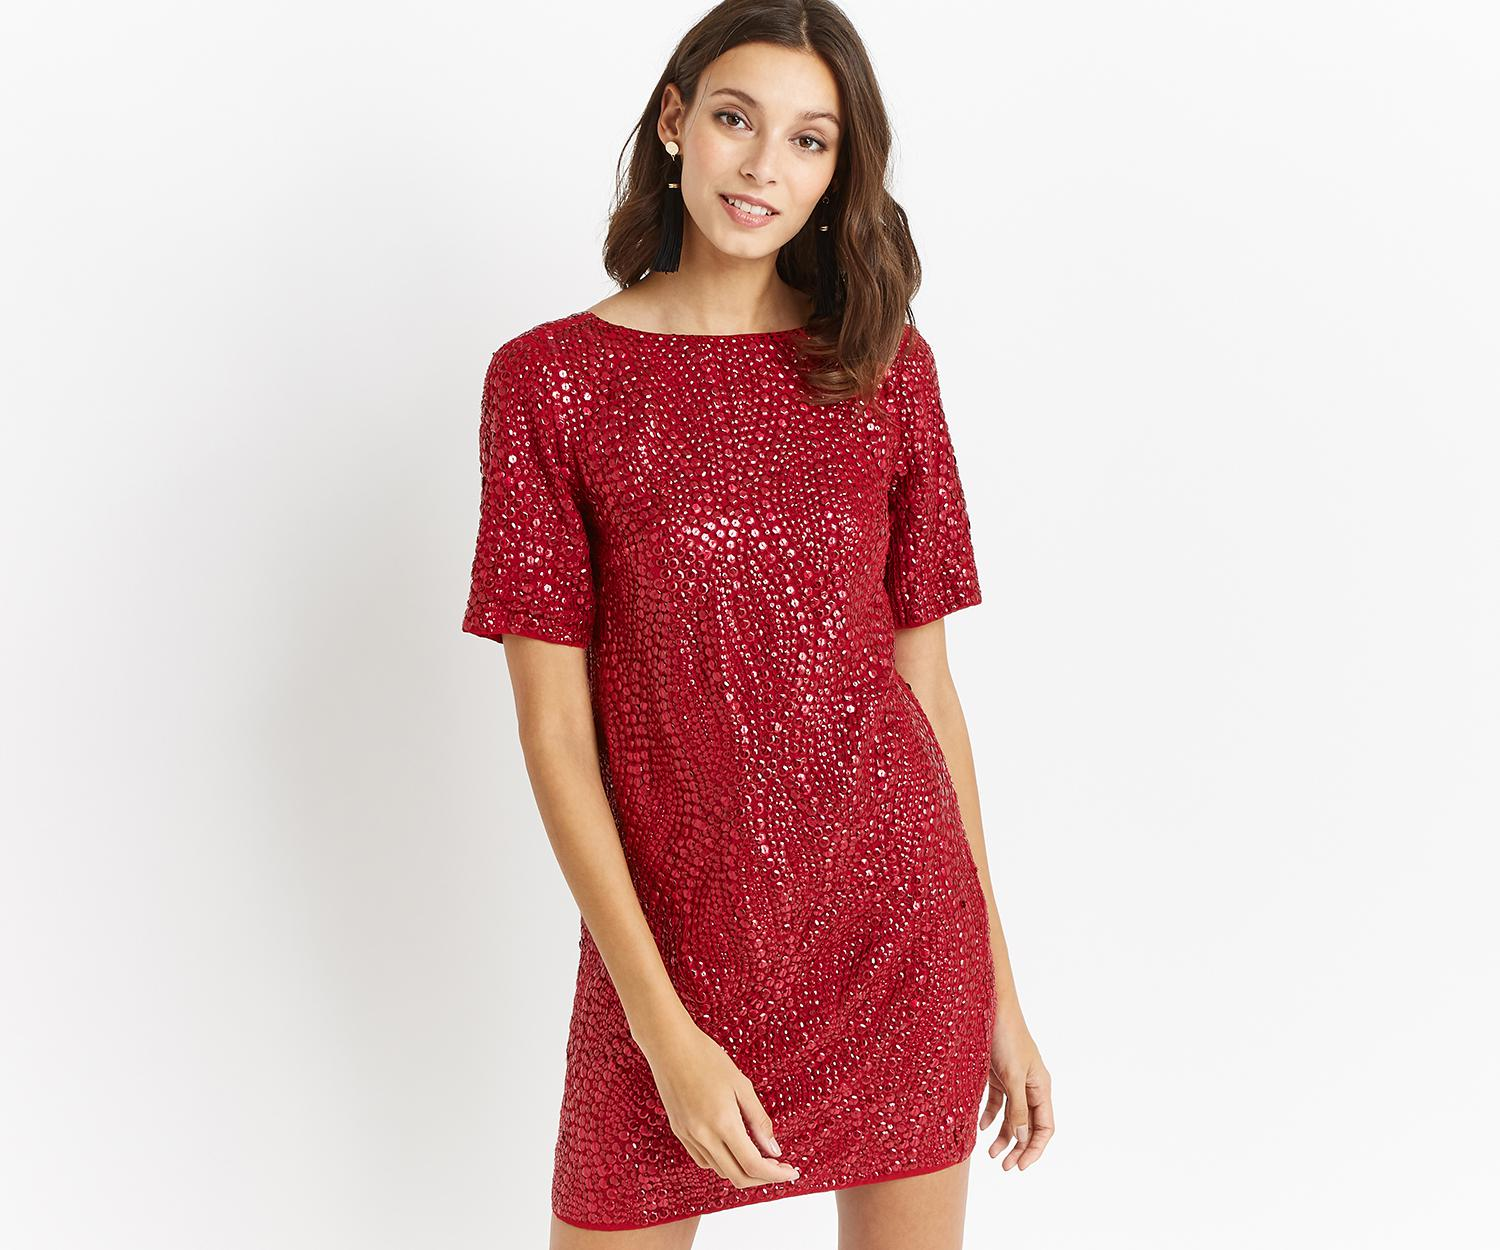 cafd1841507852 Oasis Red Embellished Shift Dress - The Best Style Dress In 2018